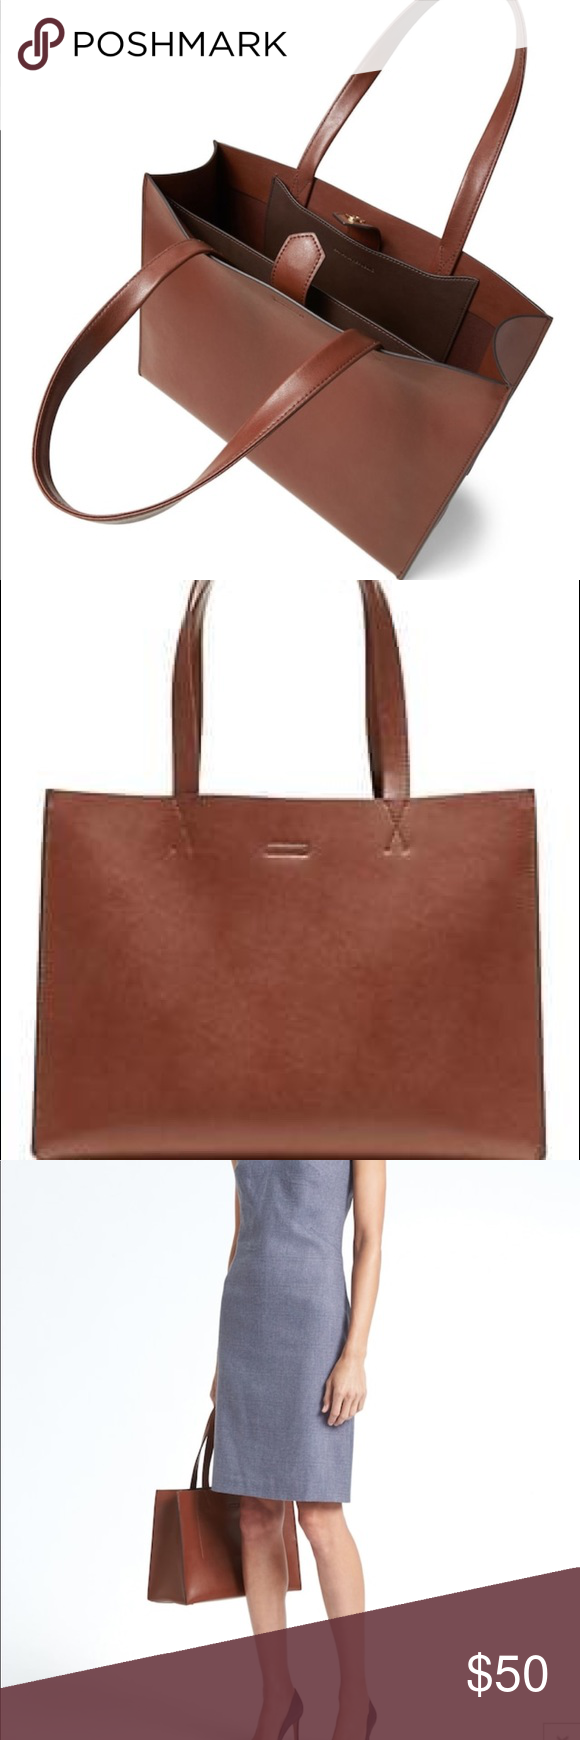 b1695180d784 Banana republic portfolio structured leather tote Brand new with tags. Stow  your laptop